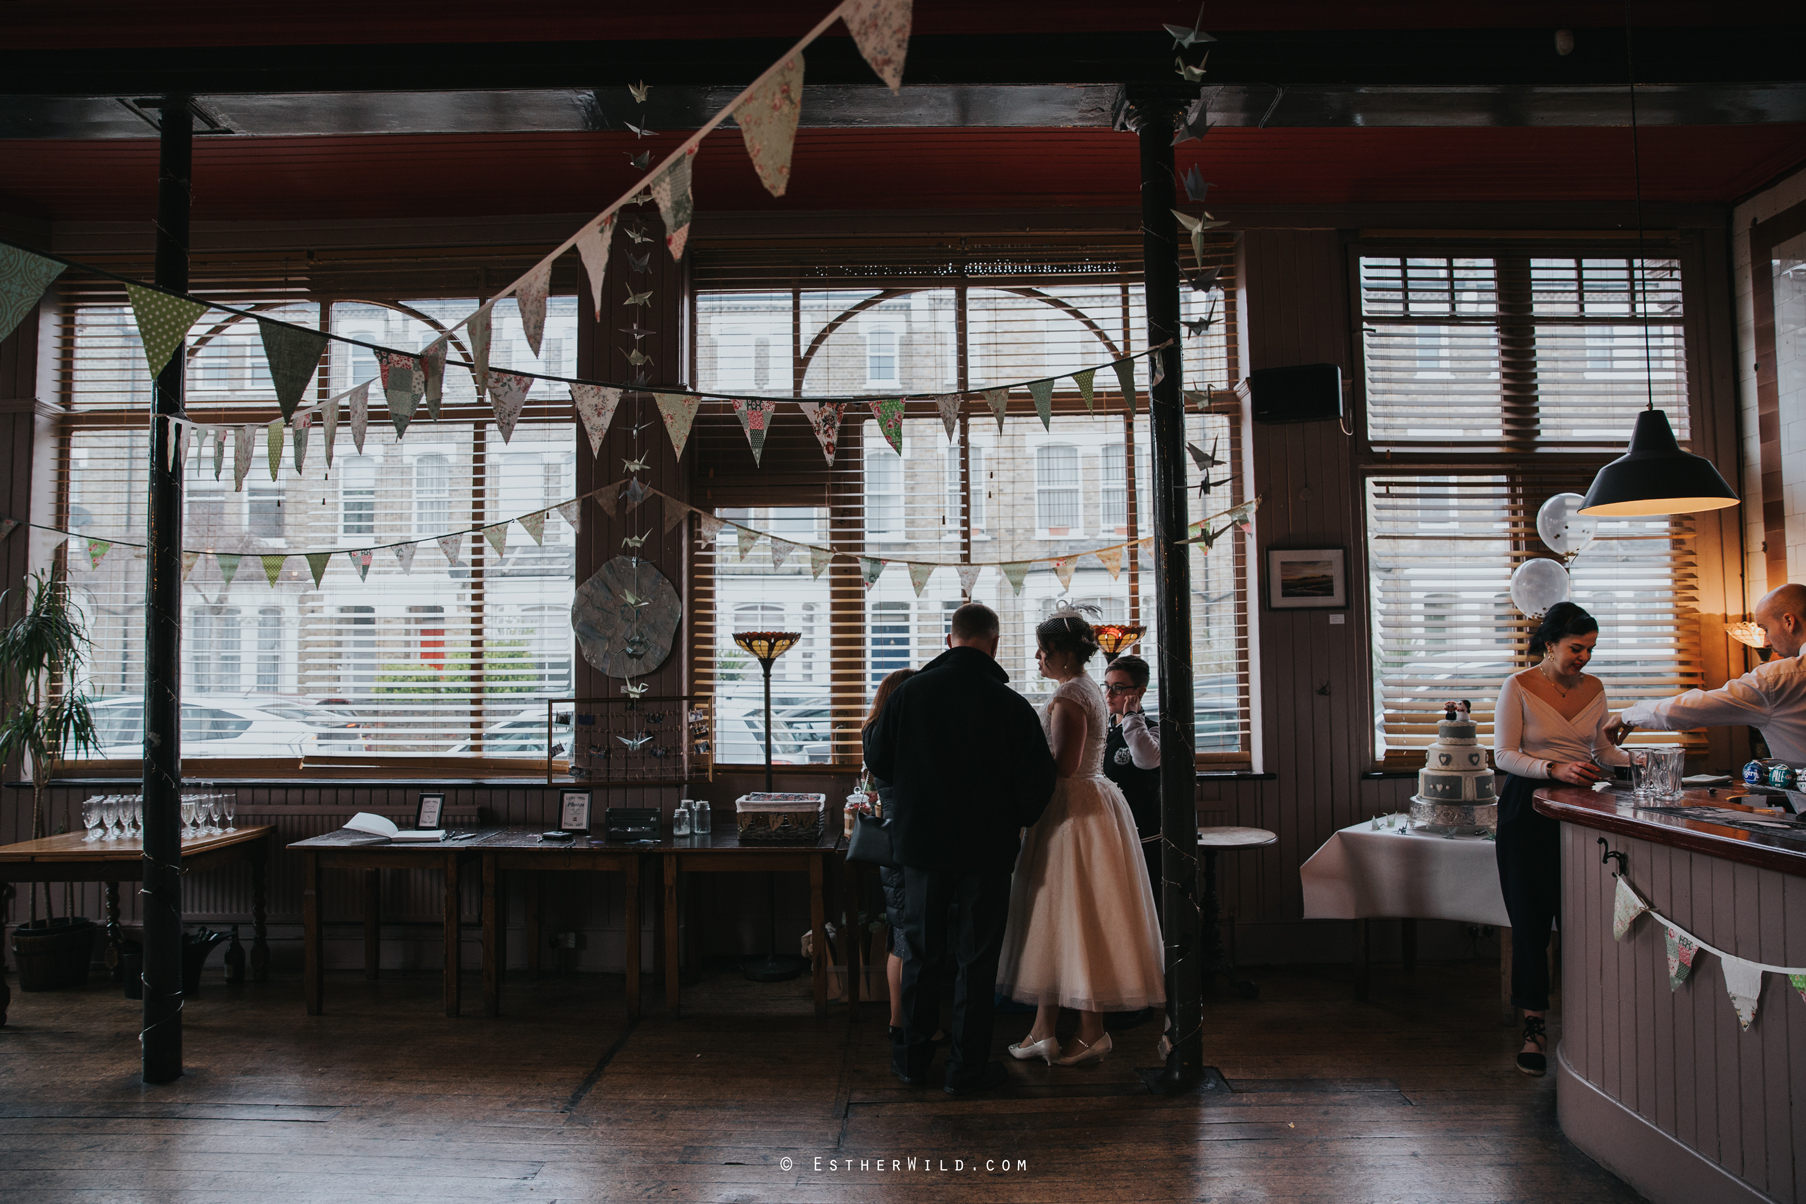 Islington_Town_Hall_Assembly_Hall_Council_Chamber_The_Star_Pub_London_Sacred_Wedding_Copyright_Esther_Wild_Photographer_IMG_1072.jpg